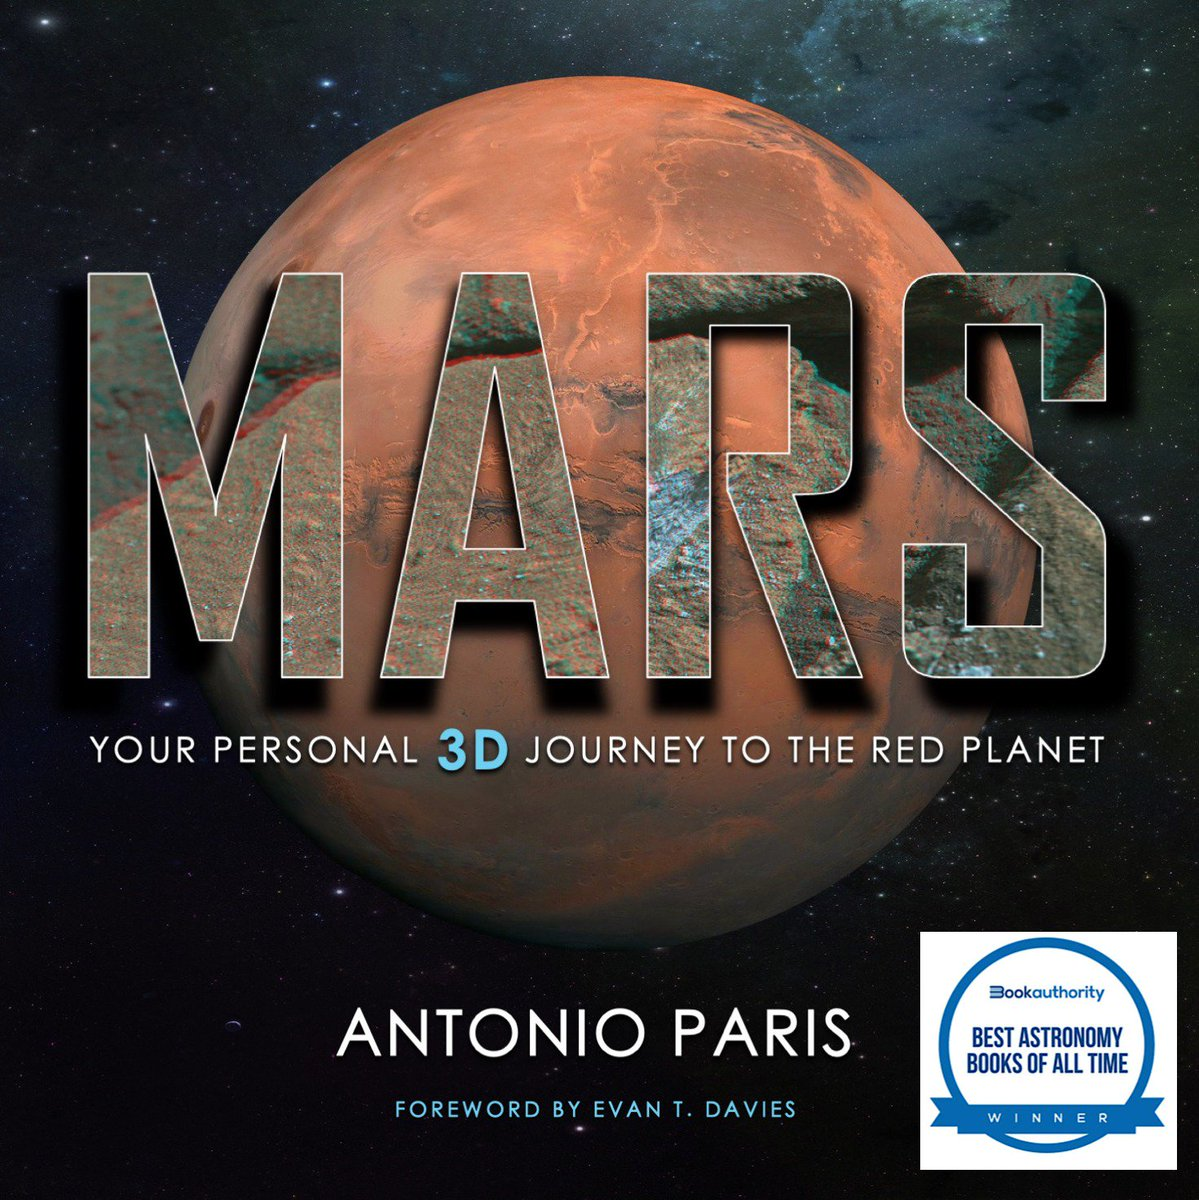 Have you ever wanted to visit Mars? Welcome to Mars 3D - Your Personal Journey to the Red Planet. My new book will introduce you to the geology of Mars and the groundbreaking achievements in the exploration of the Red Planet. Autographed copies on Amazon: https://www.amazon.com/dp/0692073671